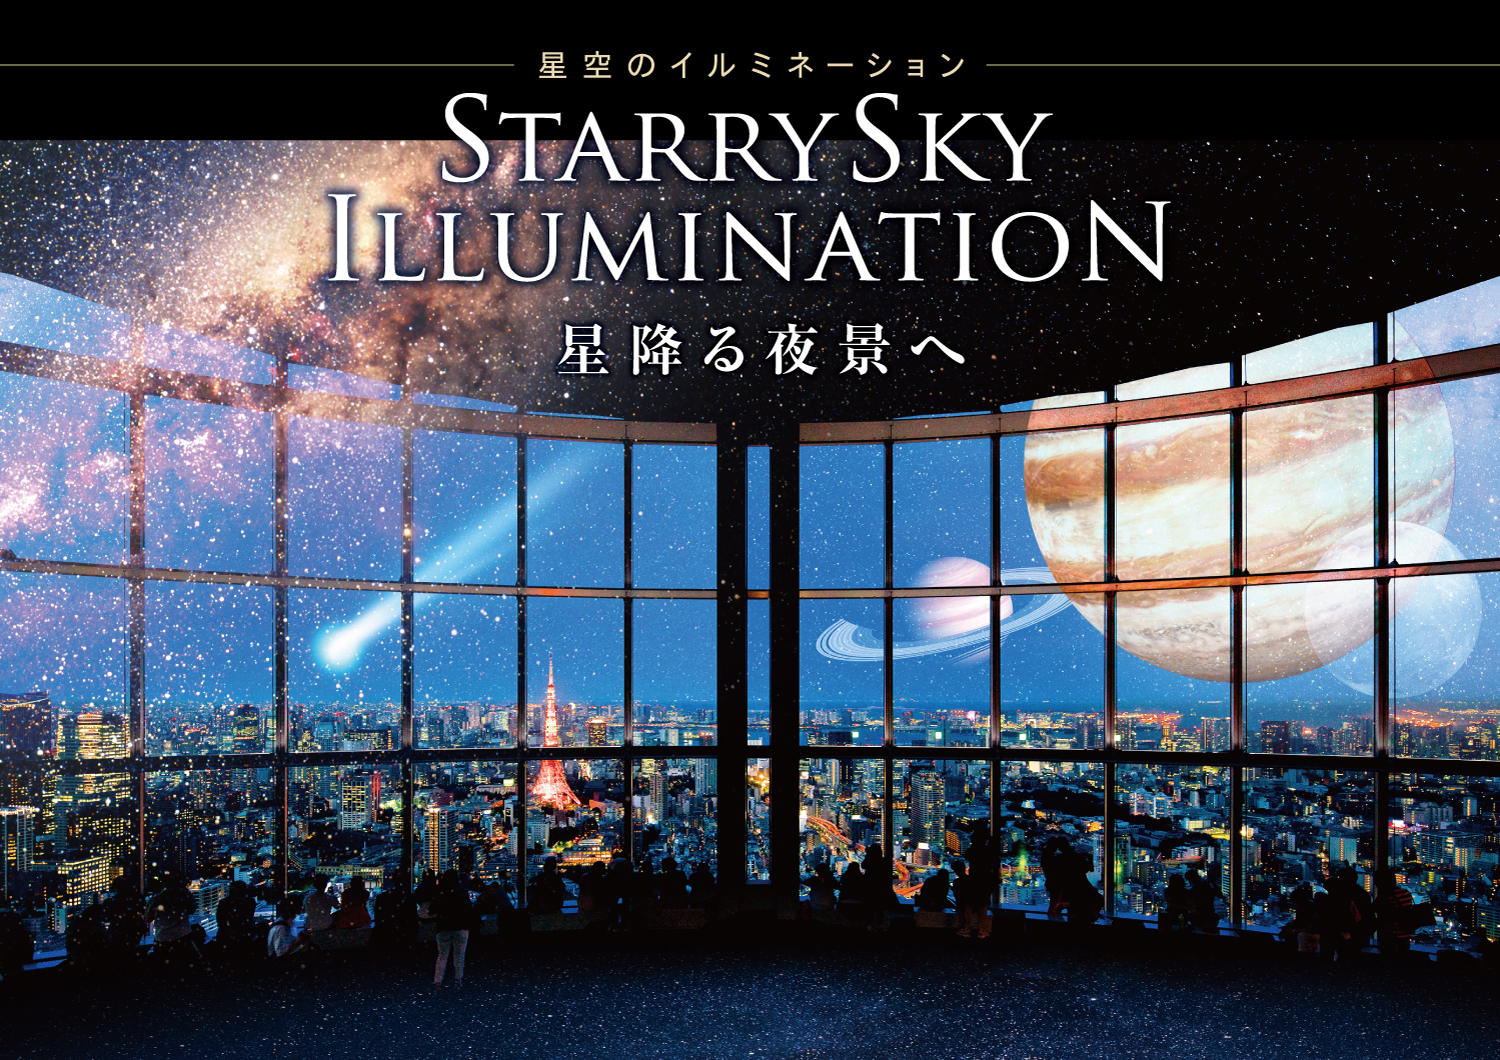 tcv starrysky illumination 2016 main